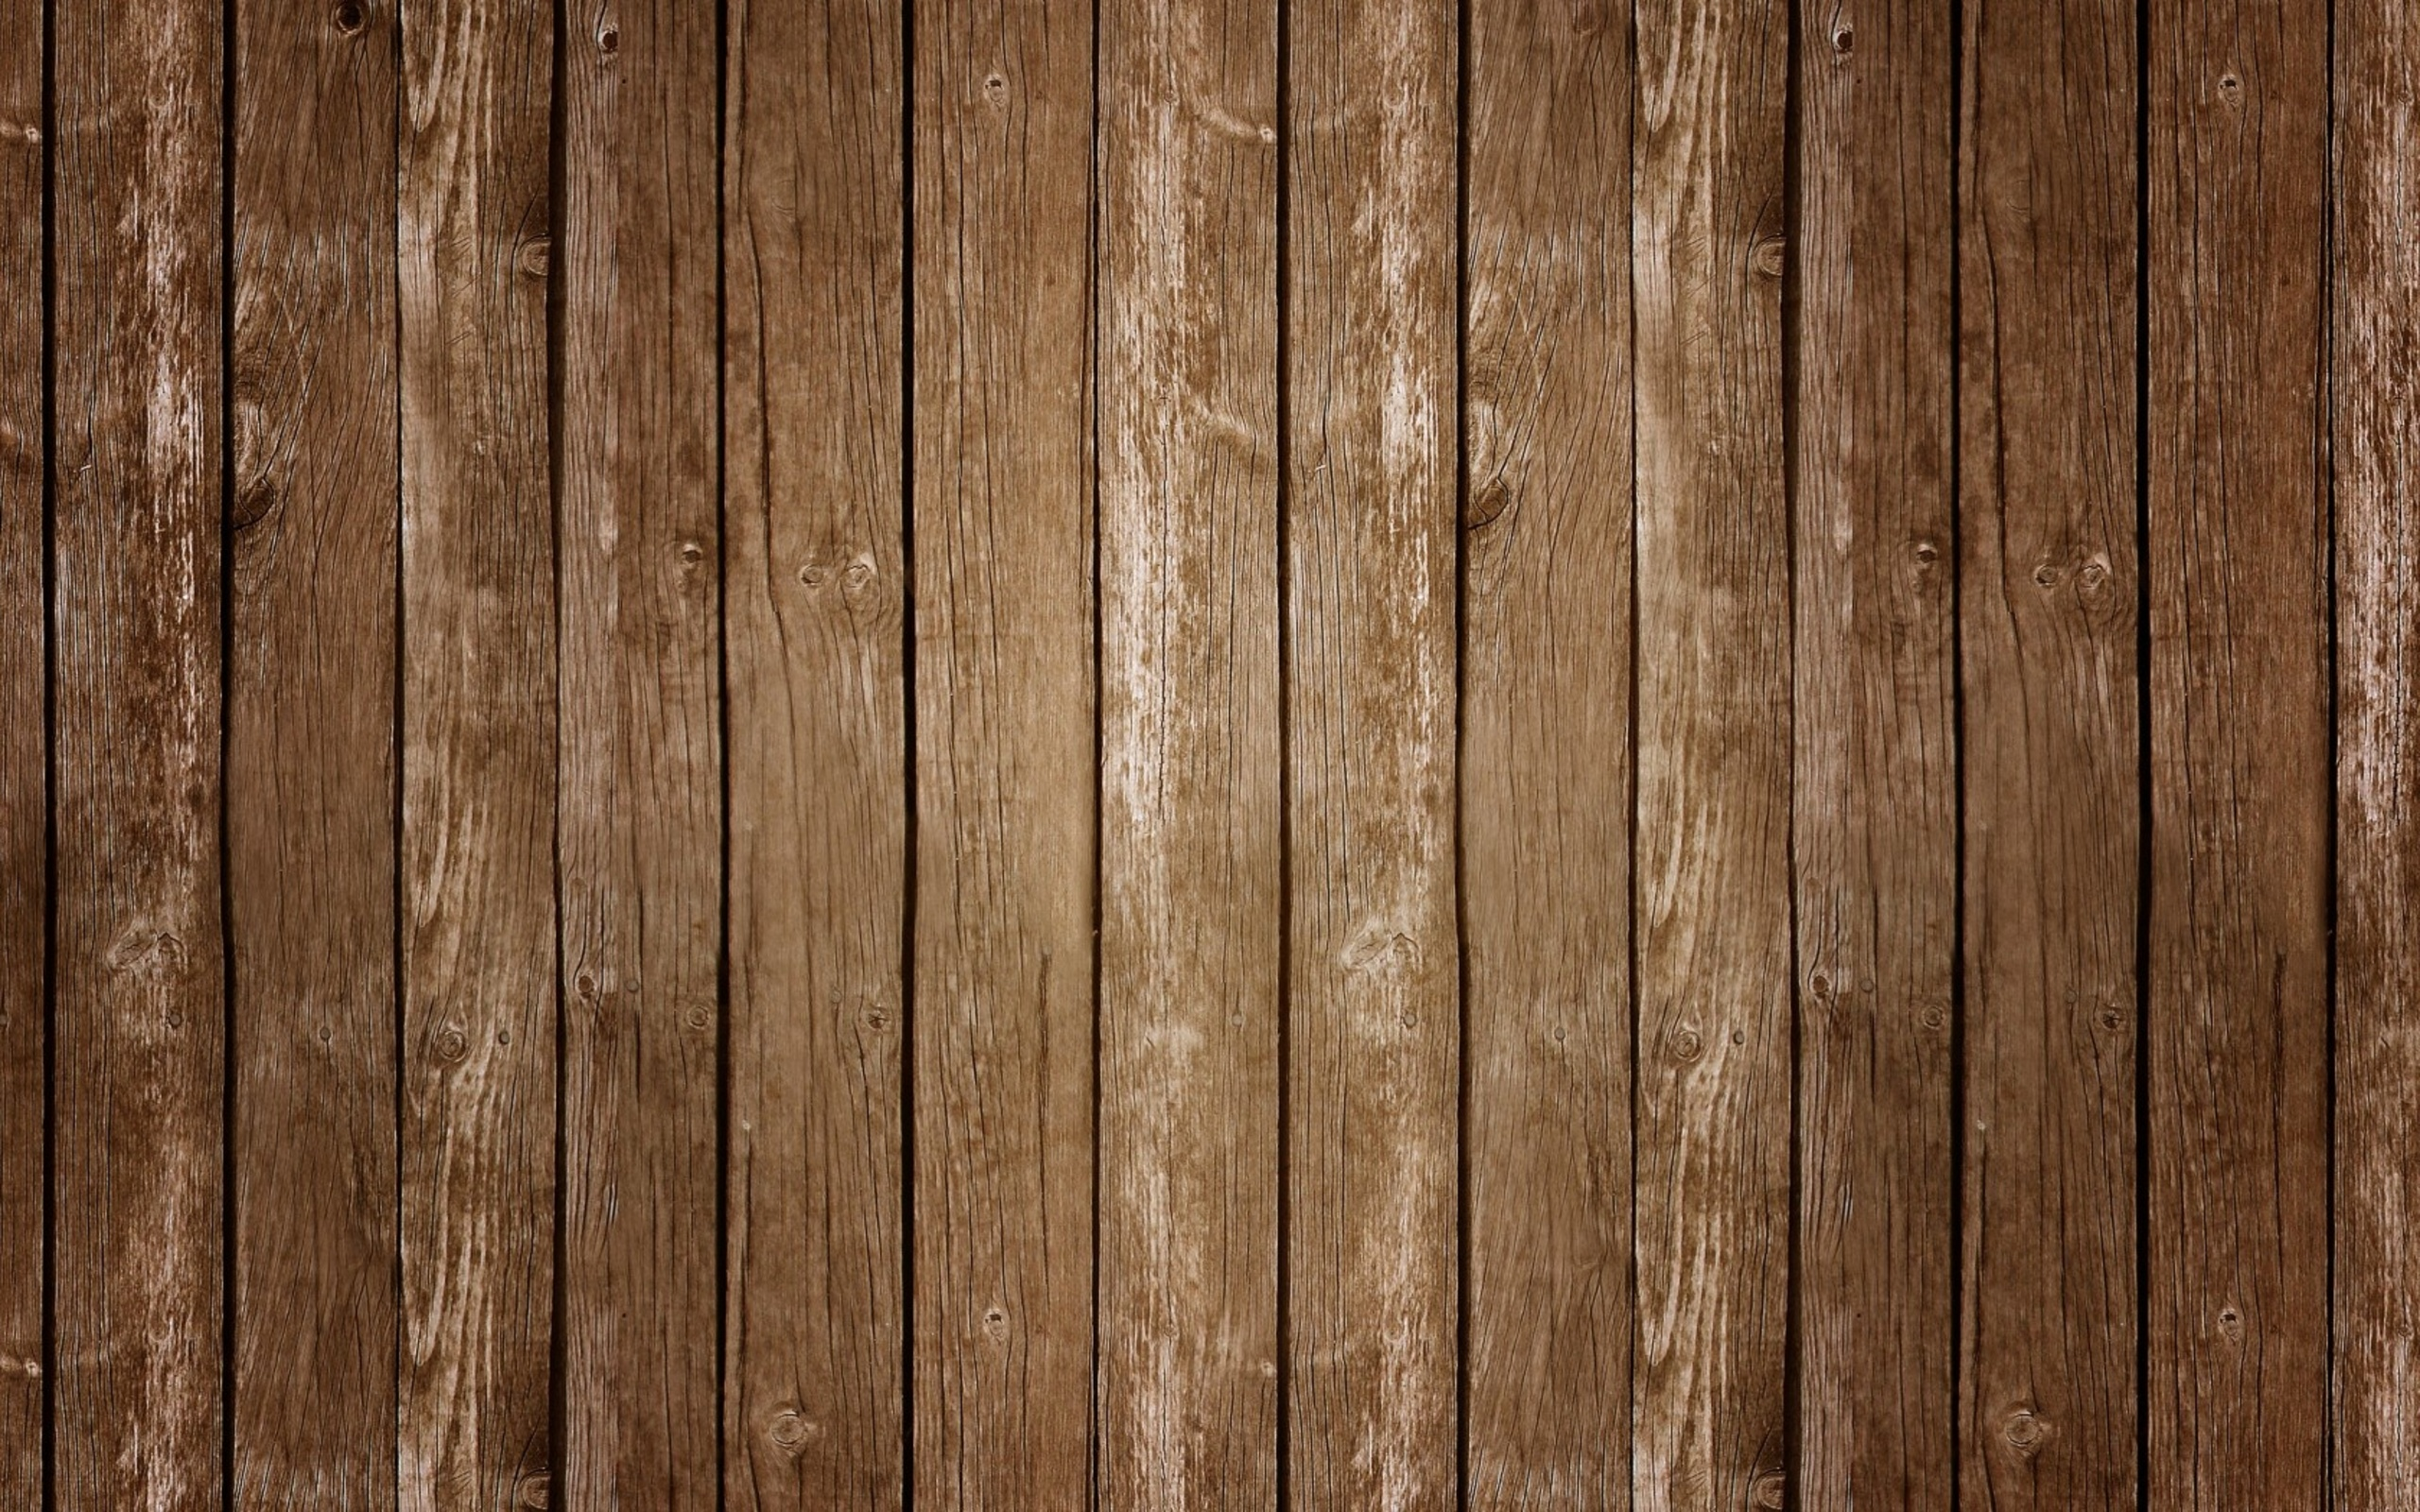 Free Photo Wooden Background Wooden Plank Wood Free